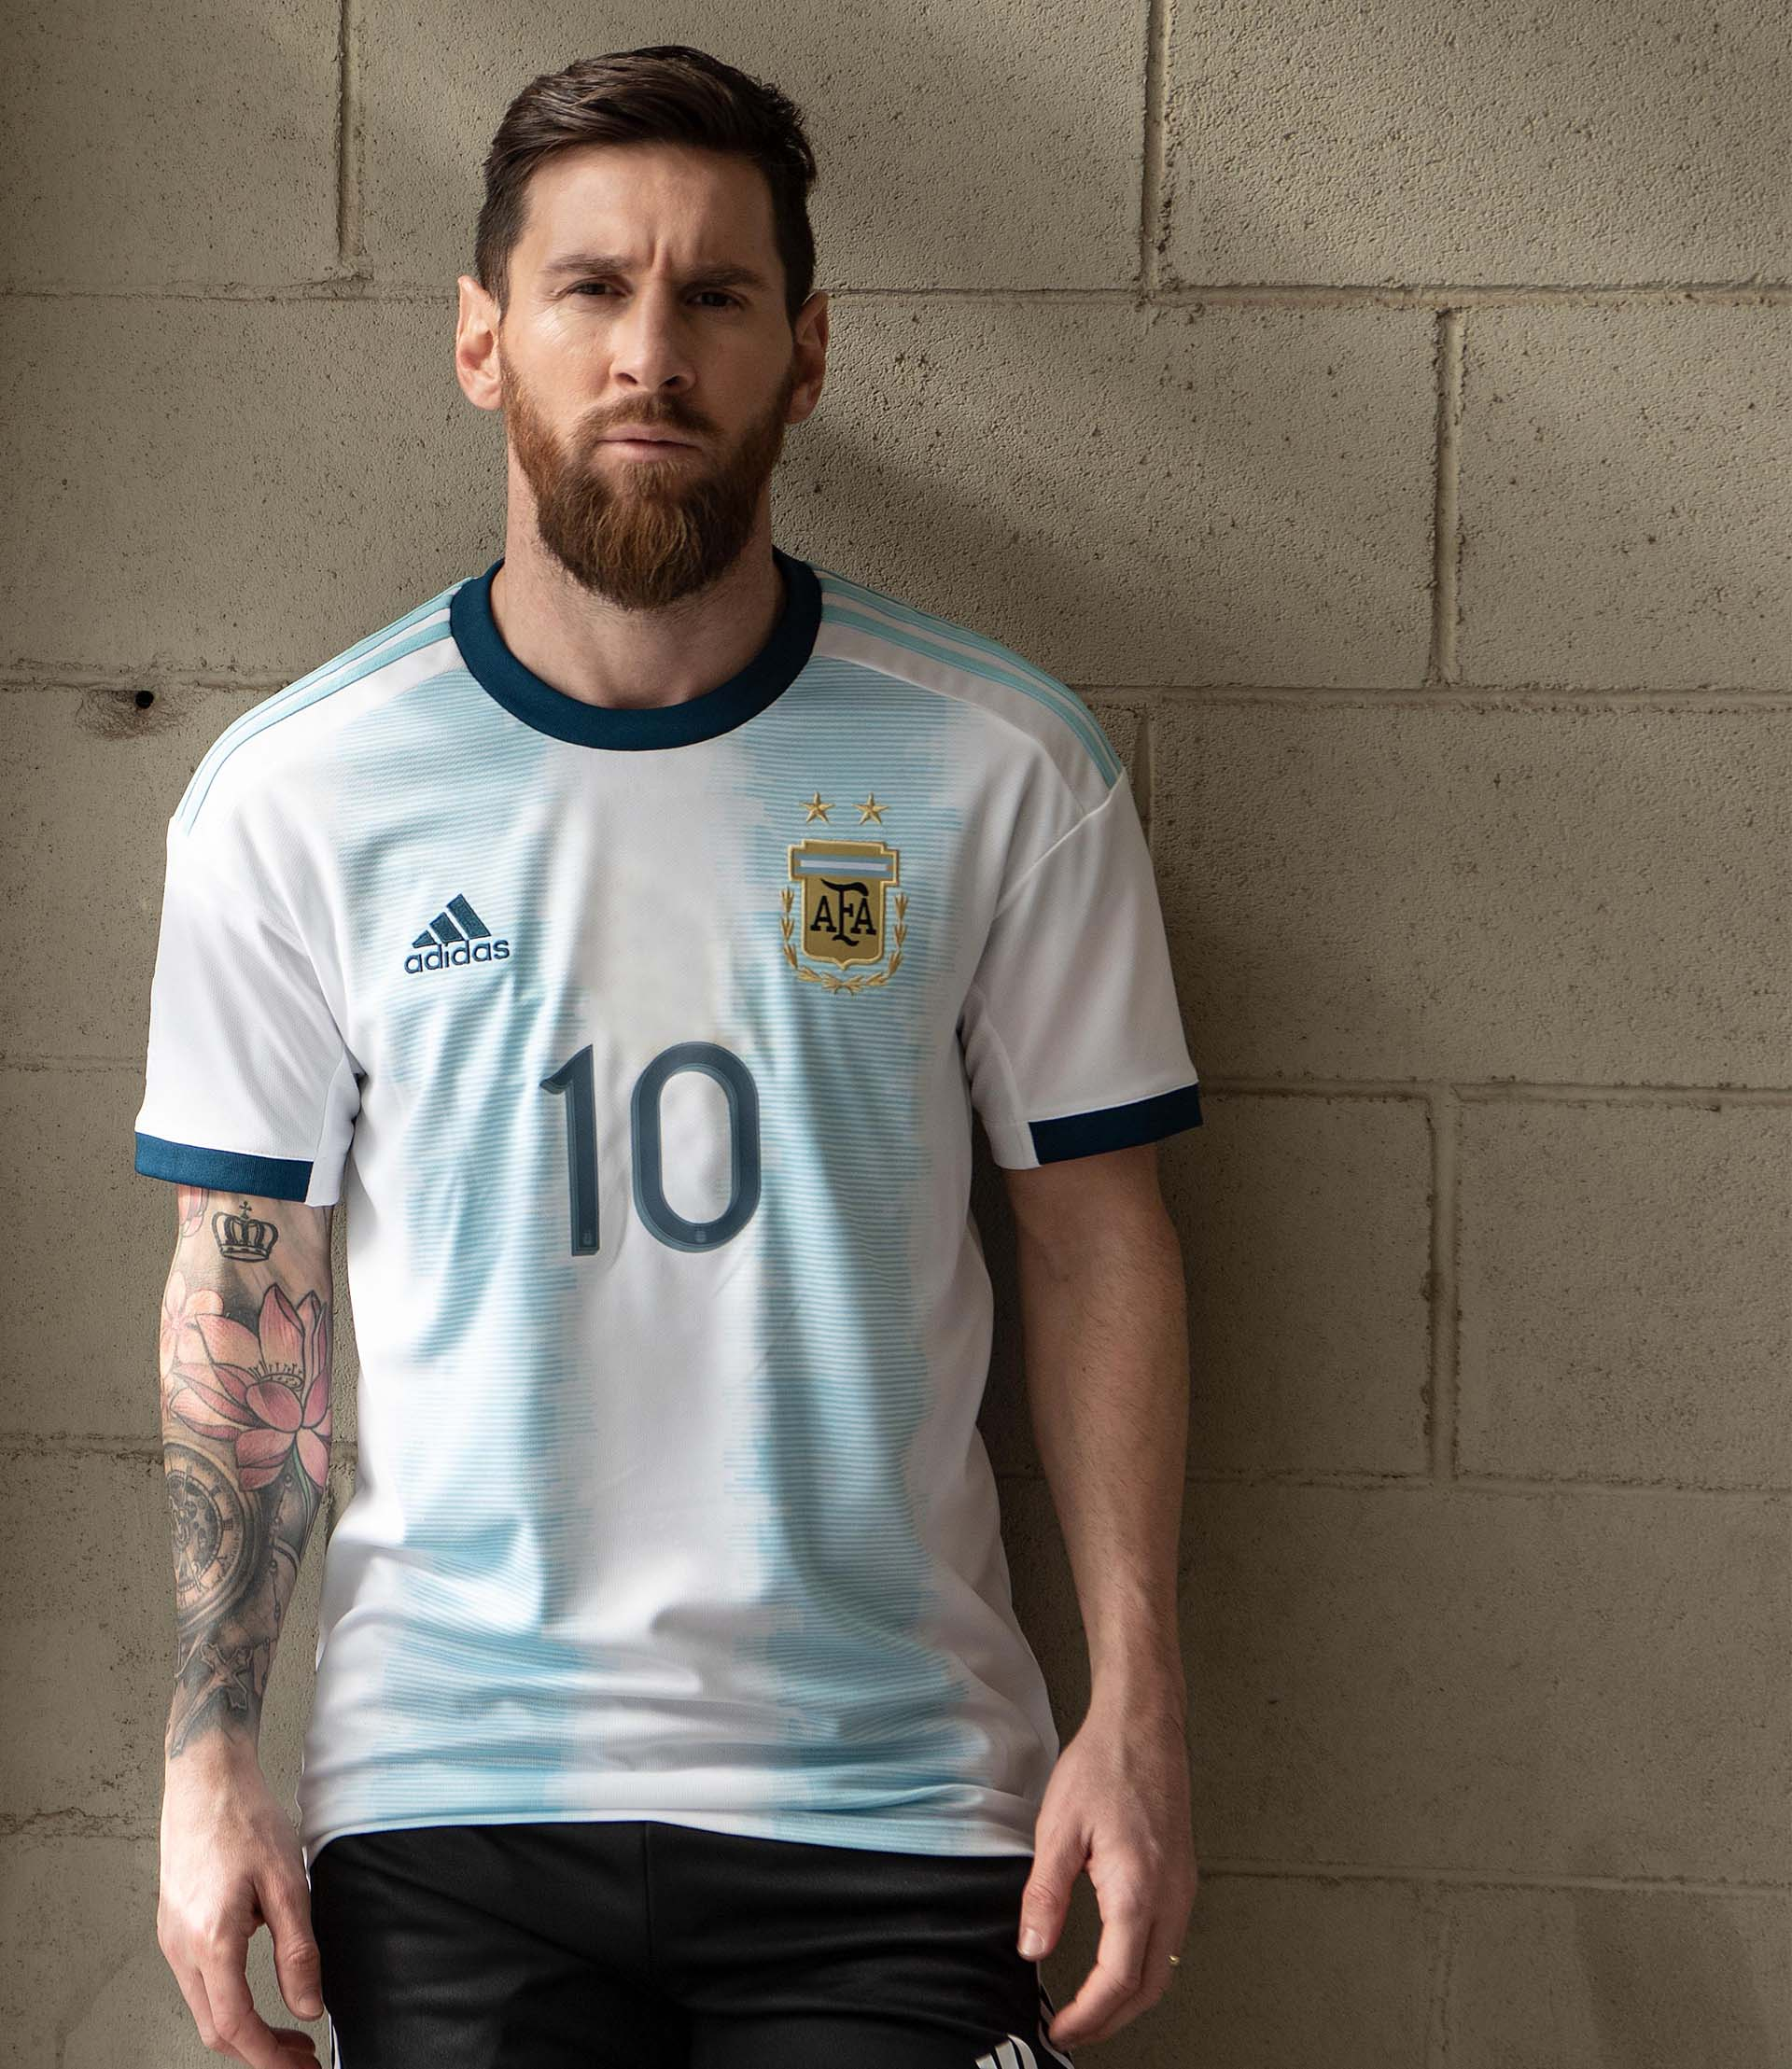 a4d454970 adidas Unveil Argentina 2019 Copa America Home Shirt - SoccerBible